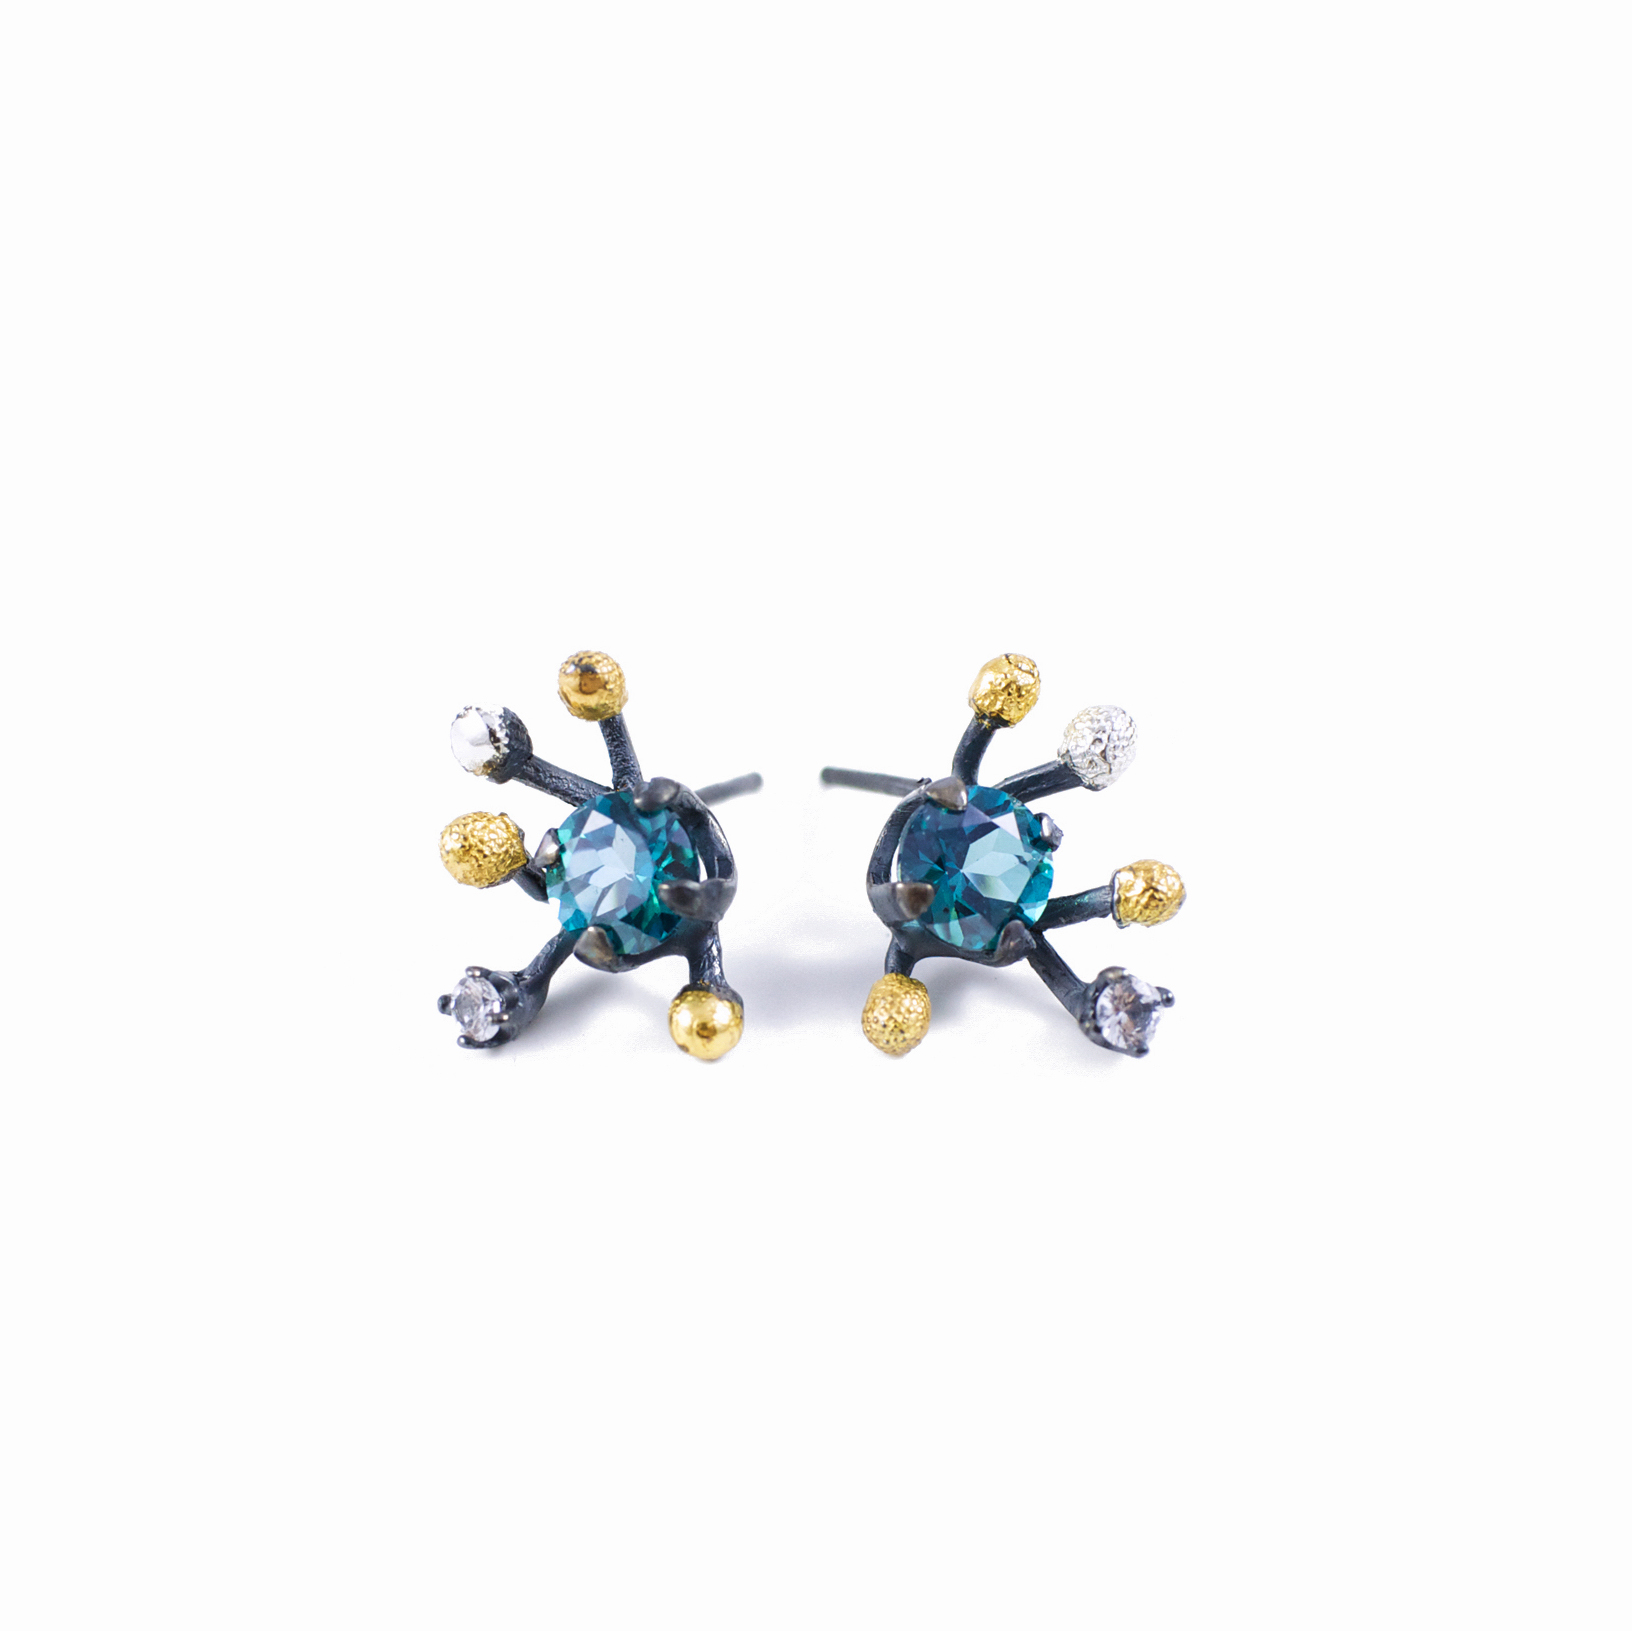 Sea Earrings : Sterling silver, topaz, tanzanite, gold vermeil, patina.